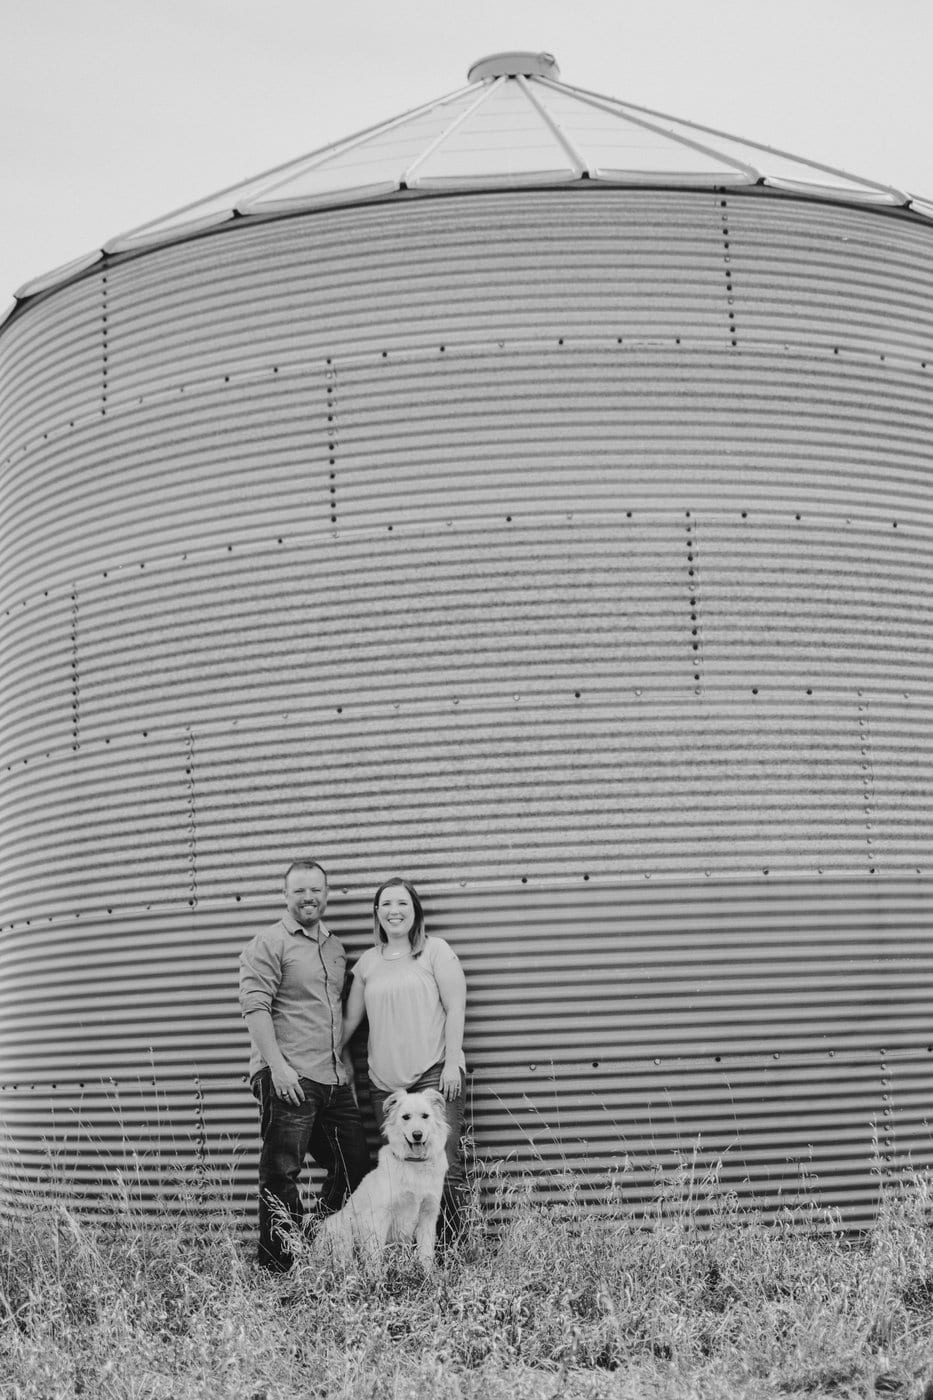 A man and woman standing in front of a grain silo with their dog